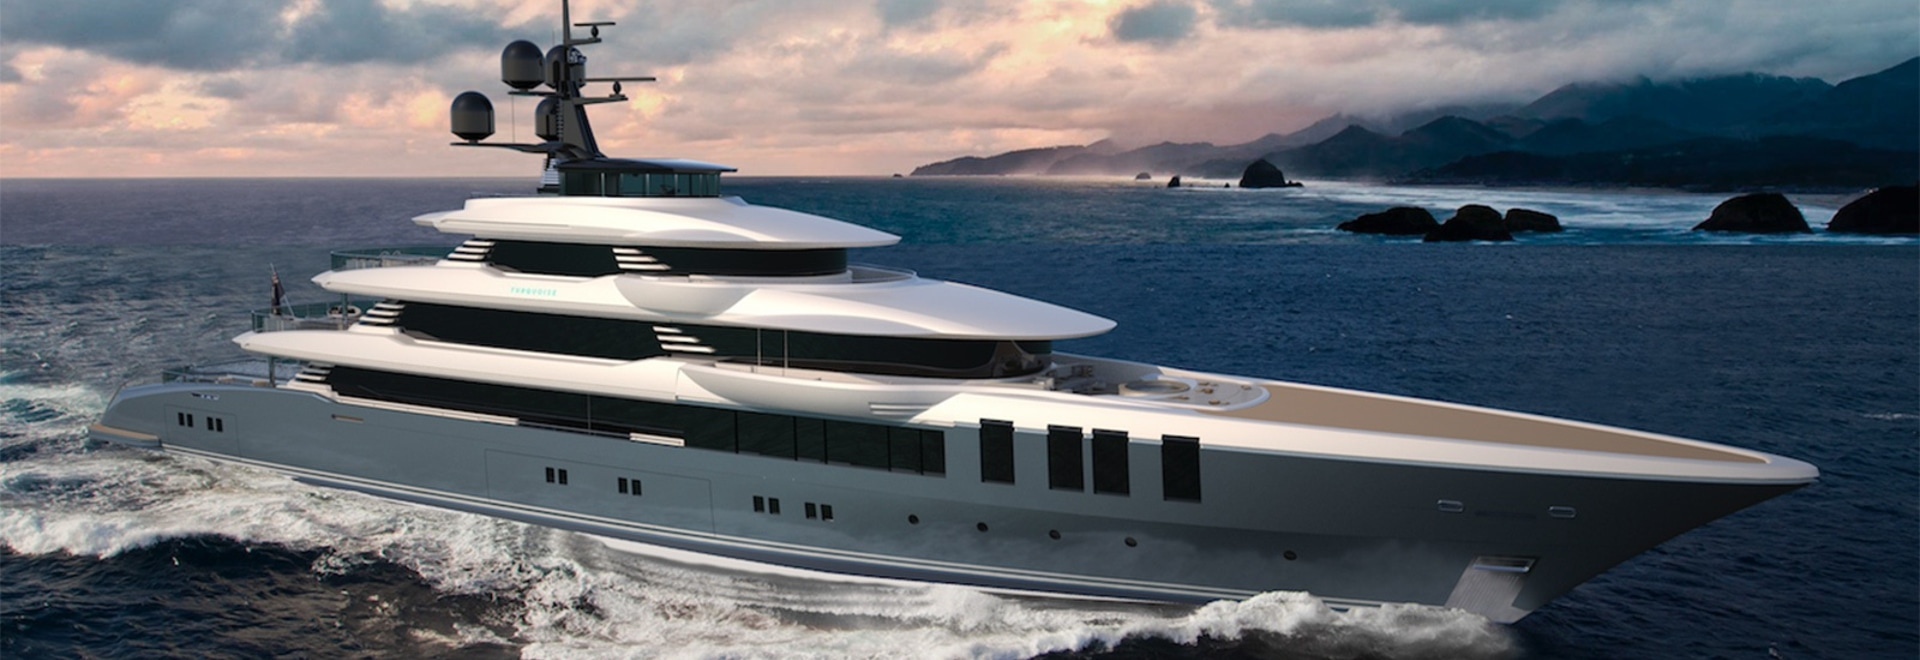 75 Metre Turquoise Yachts Project Set For 2021 Delivery